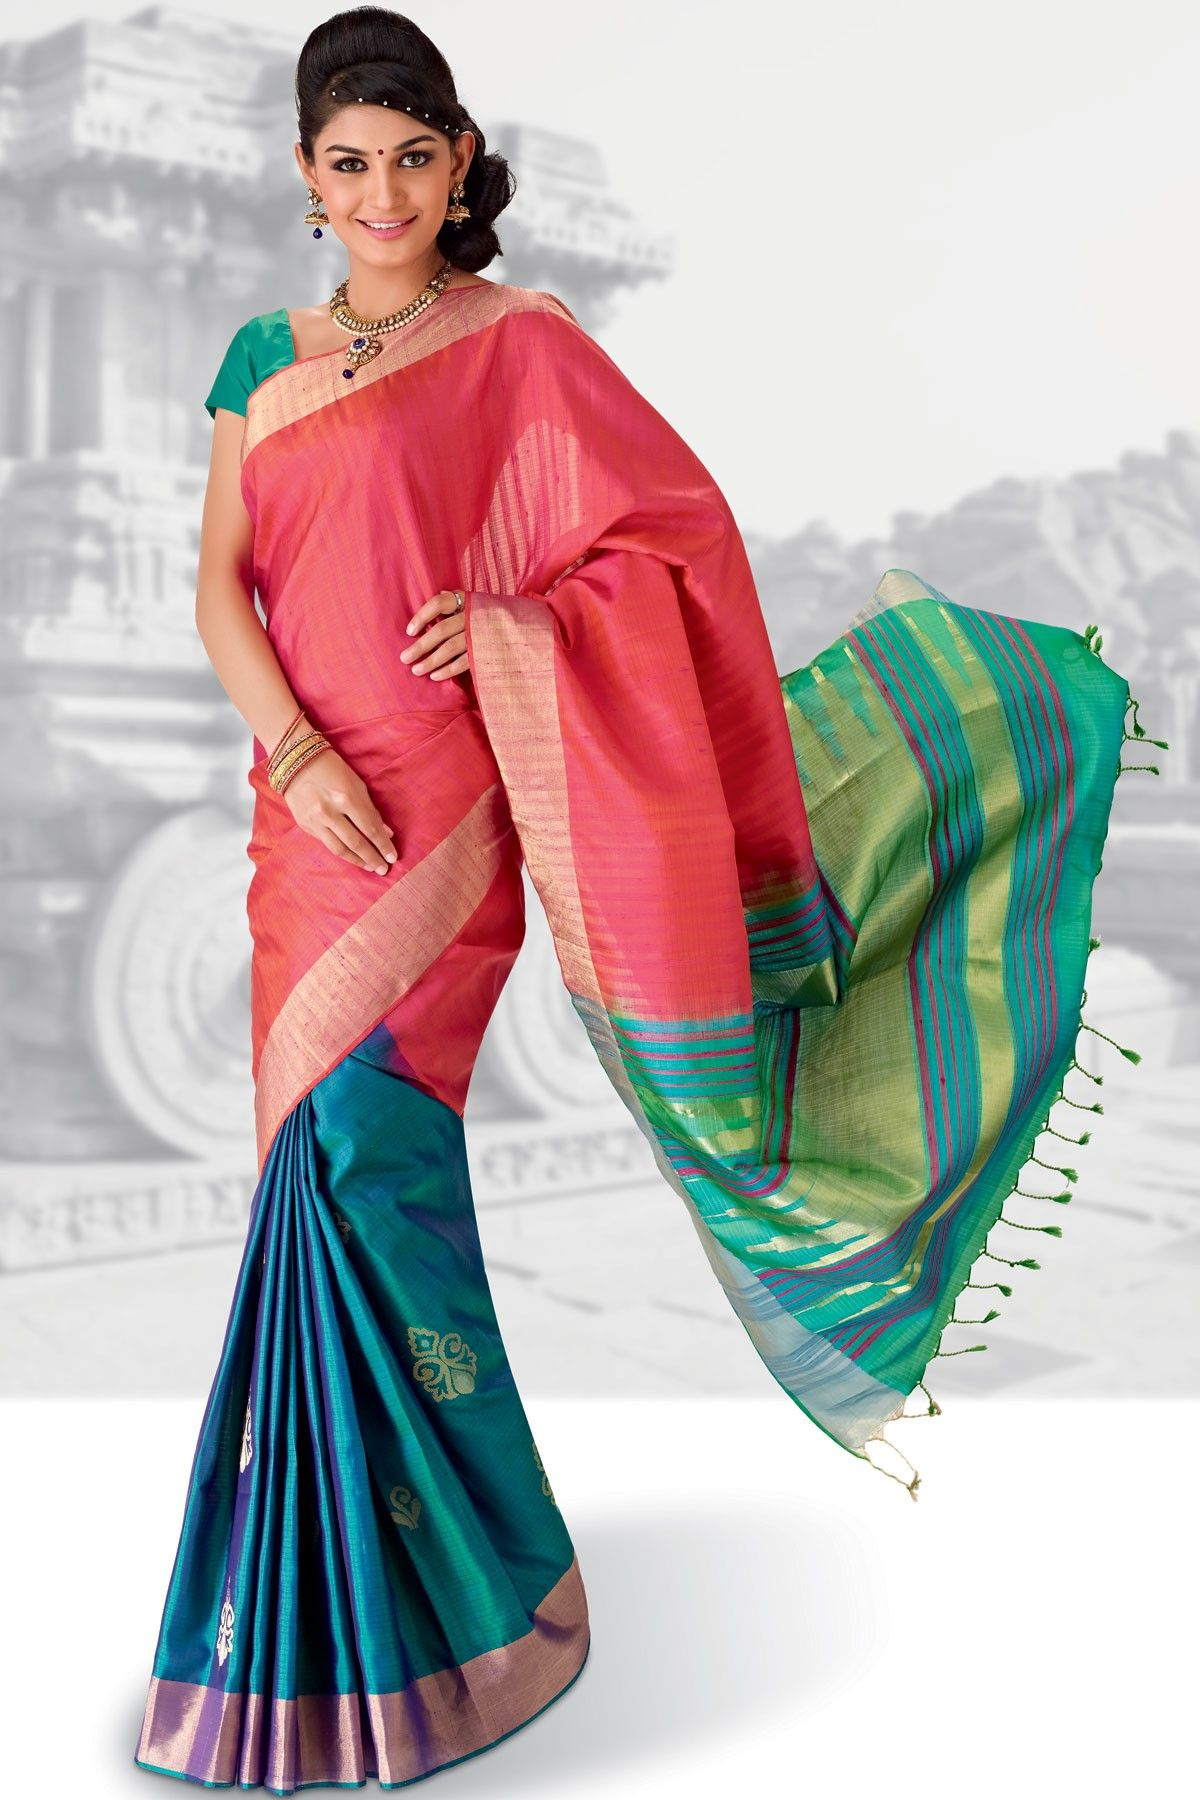 dc919ee9e11 Ravishing  Peacock Blue wevaed pure  silk saree in golden  saree border    multi colour weaved pallu along with Peacock  Green plain blouse to give  you a ...